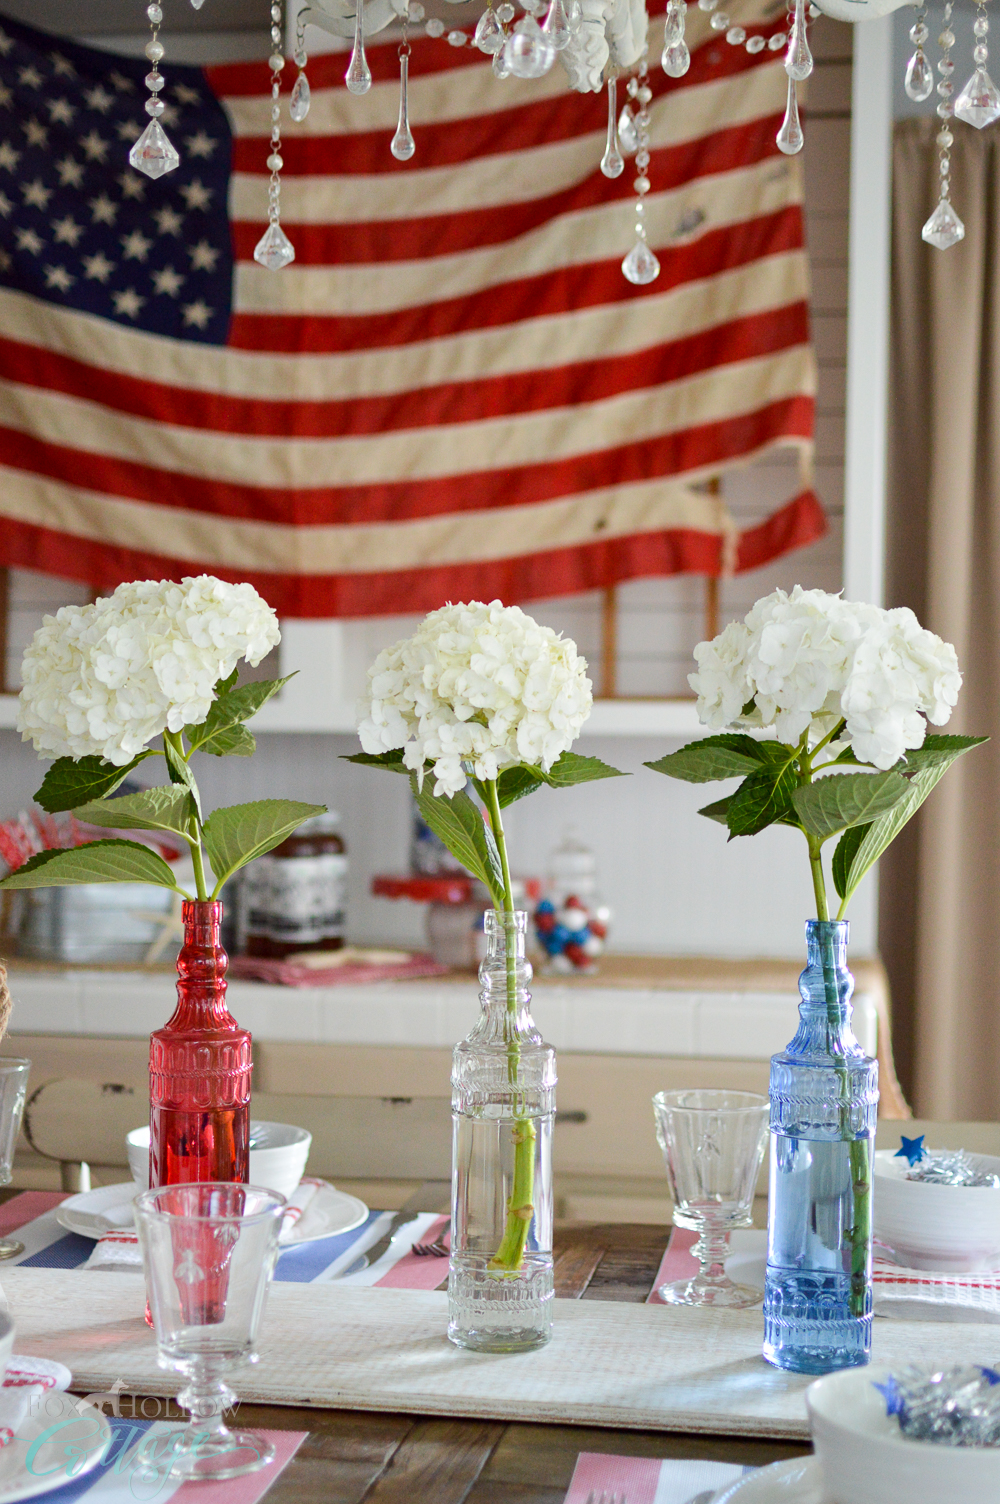 Dollar Tree, Affordable and Easy - Simple 4th of July Table Decorating Ideas with Vintage, Cottage, Farmhouse style!